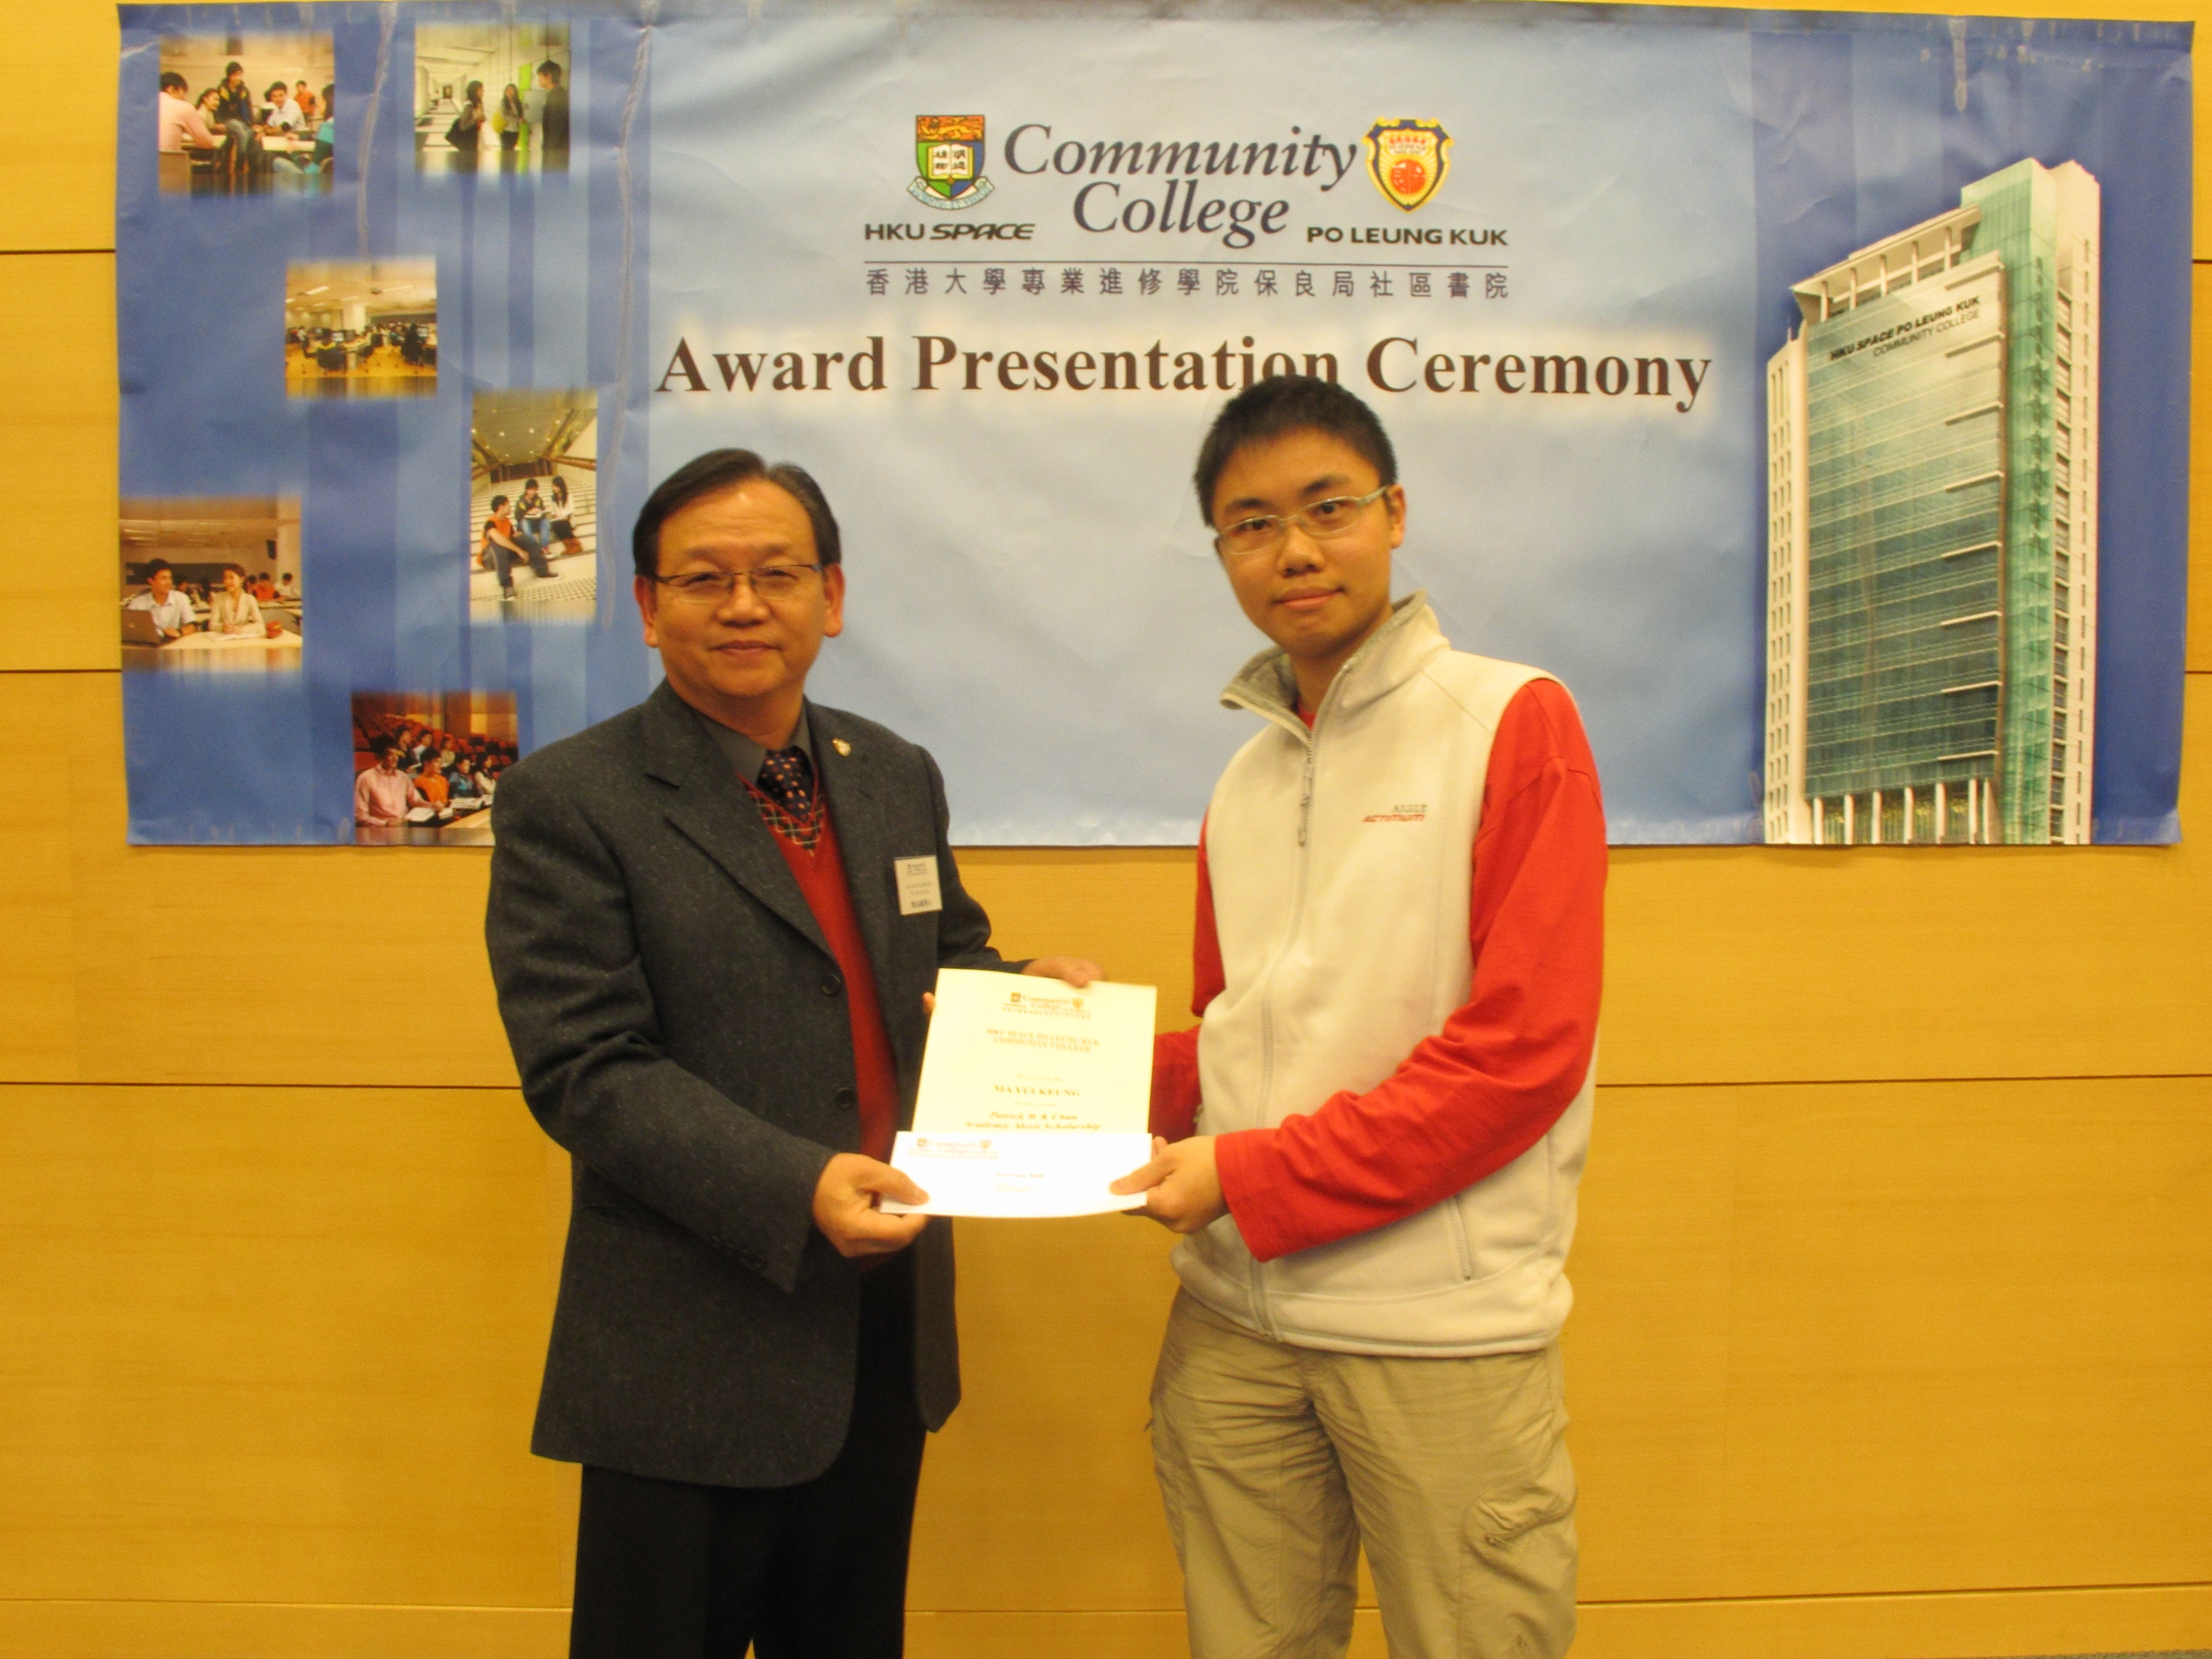 Award Presentation Ceremony 2011 - Photo - 13